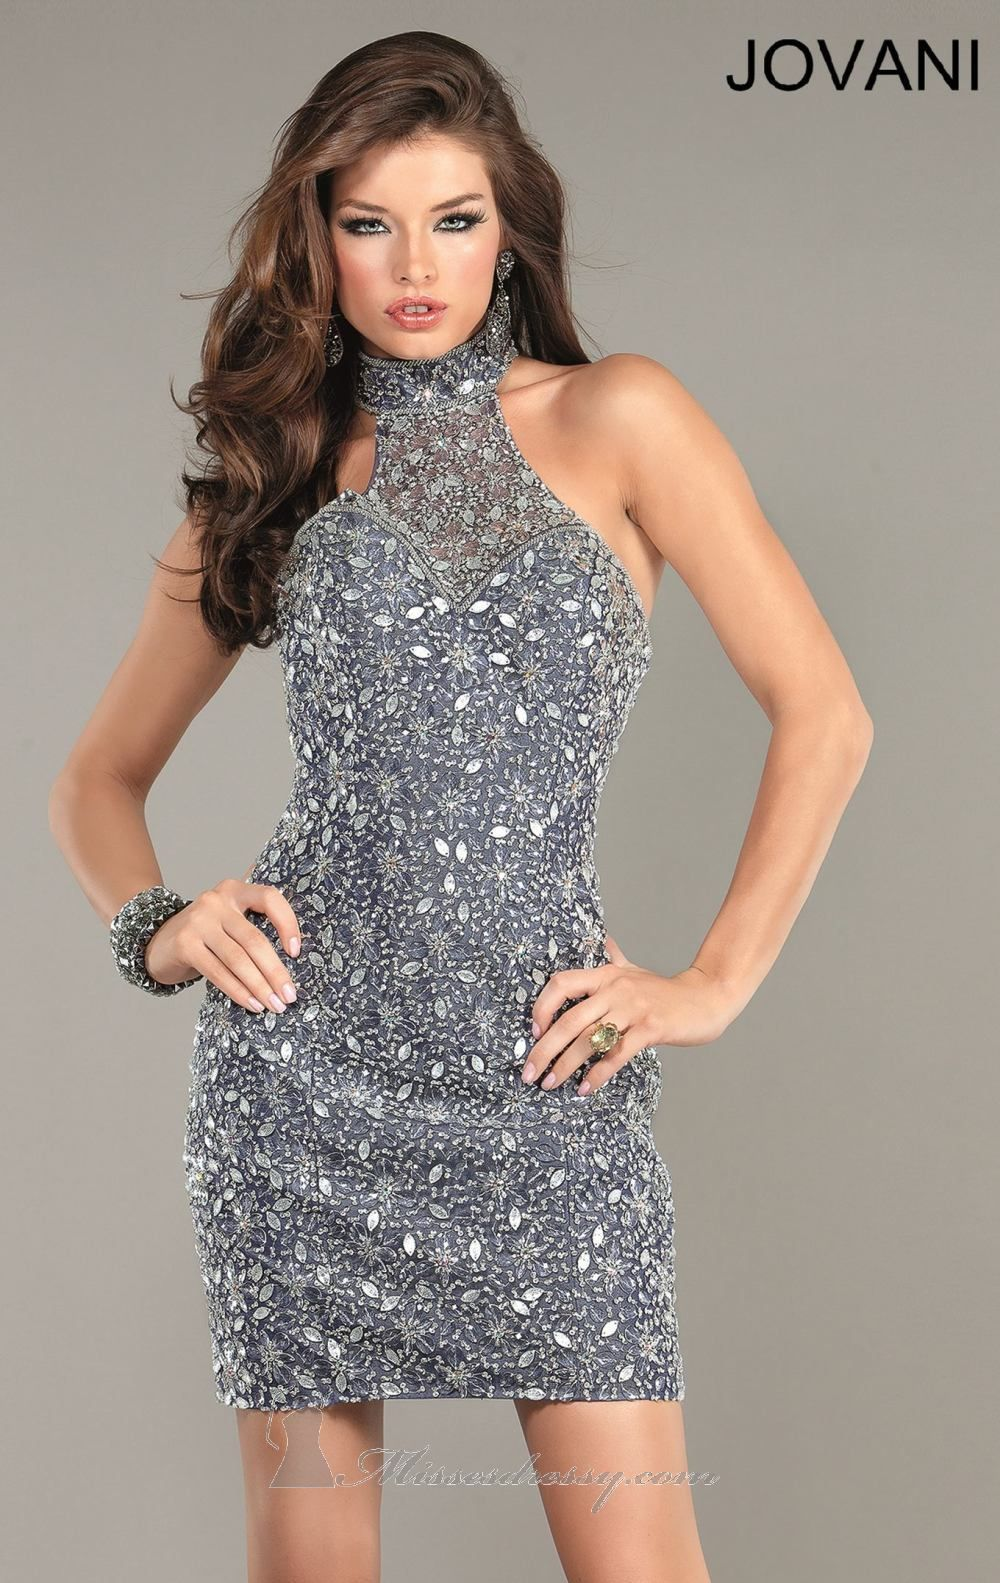 Jovani dress missesdressy fashioni like pinterest